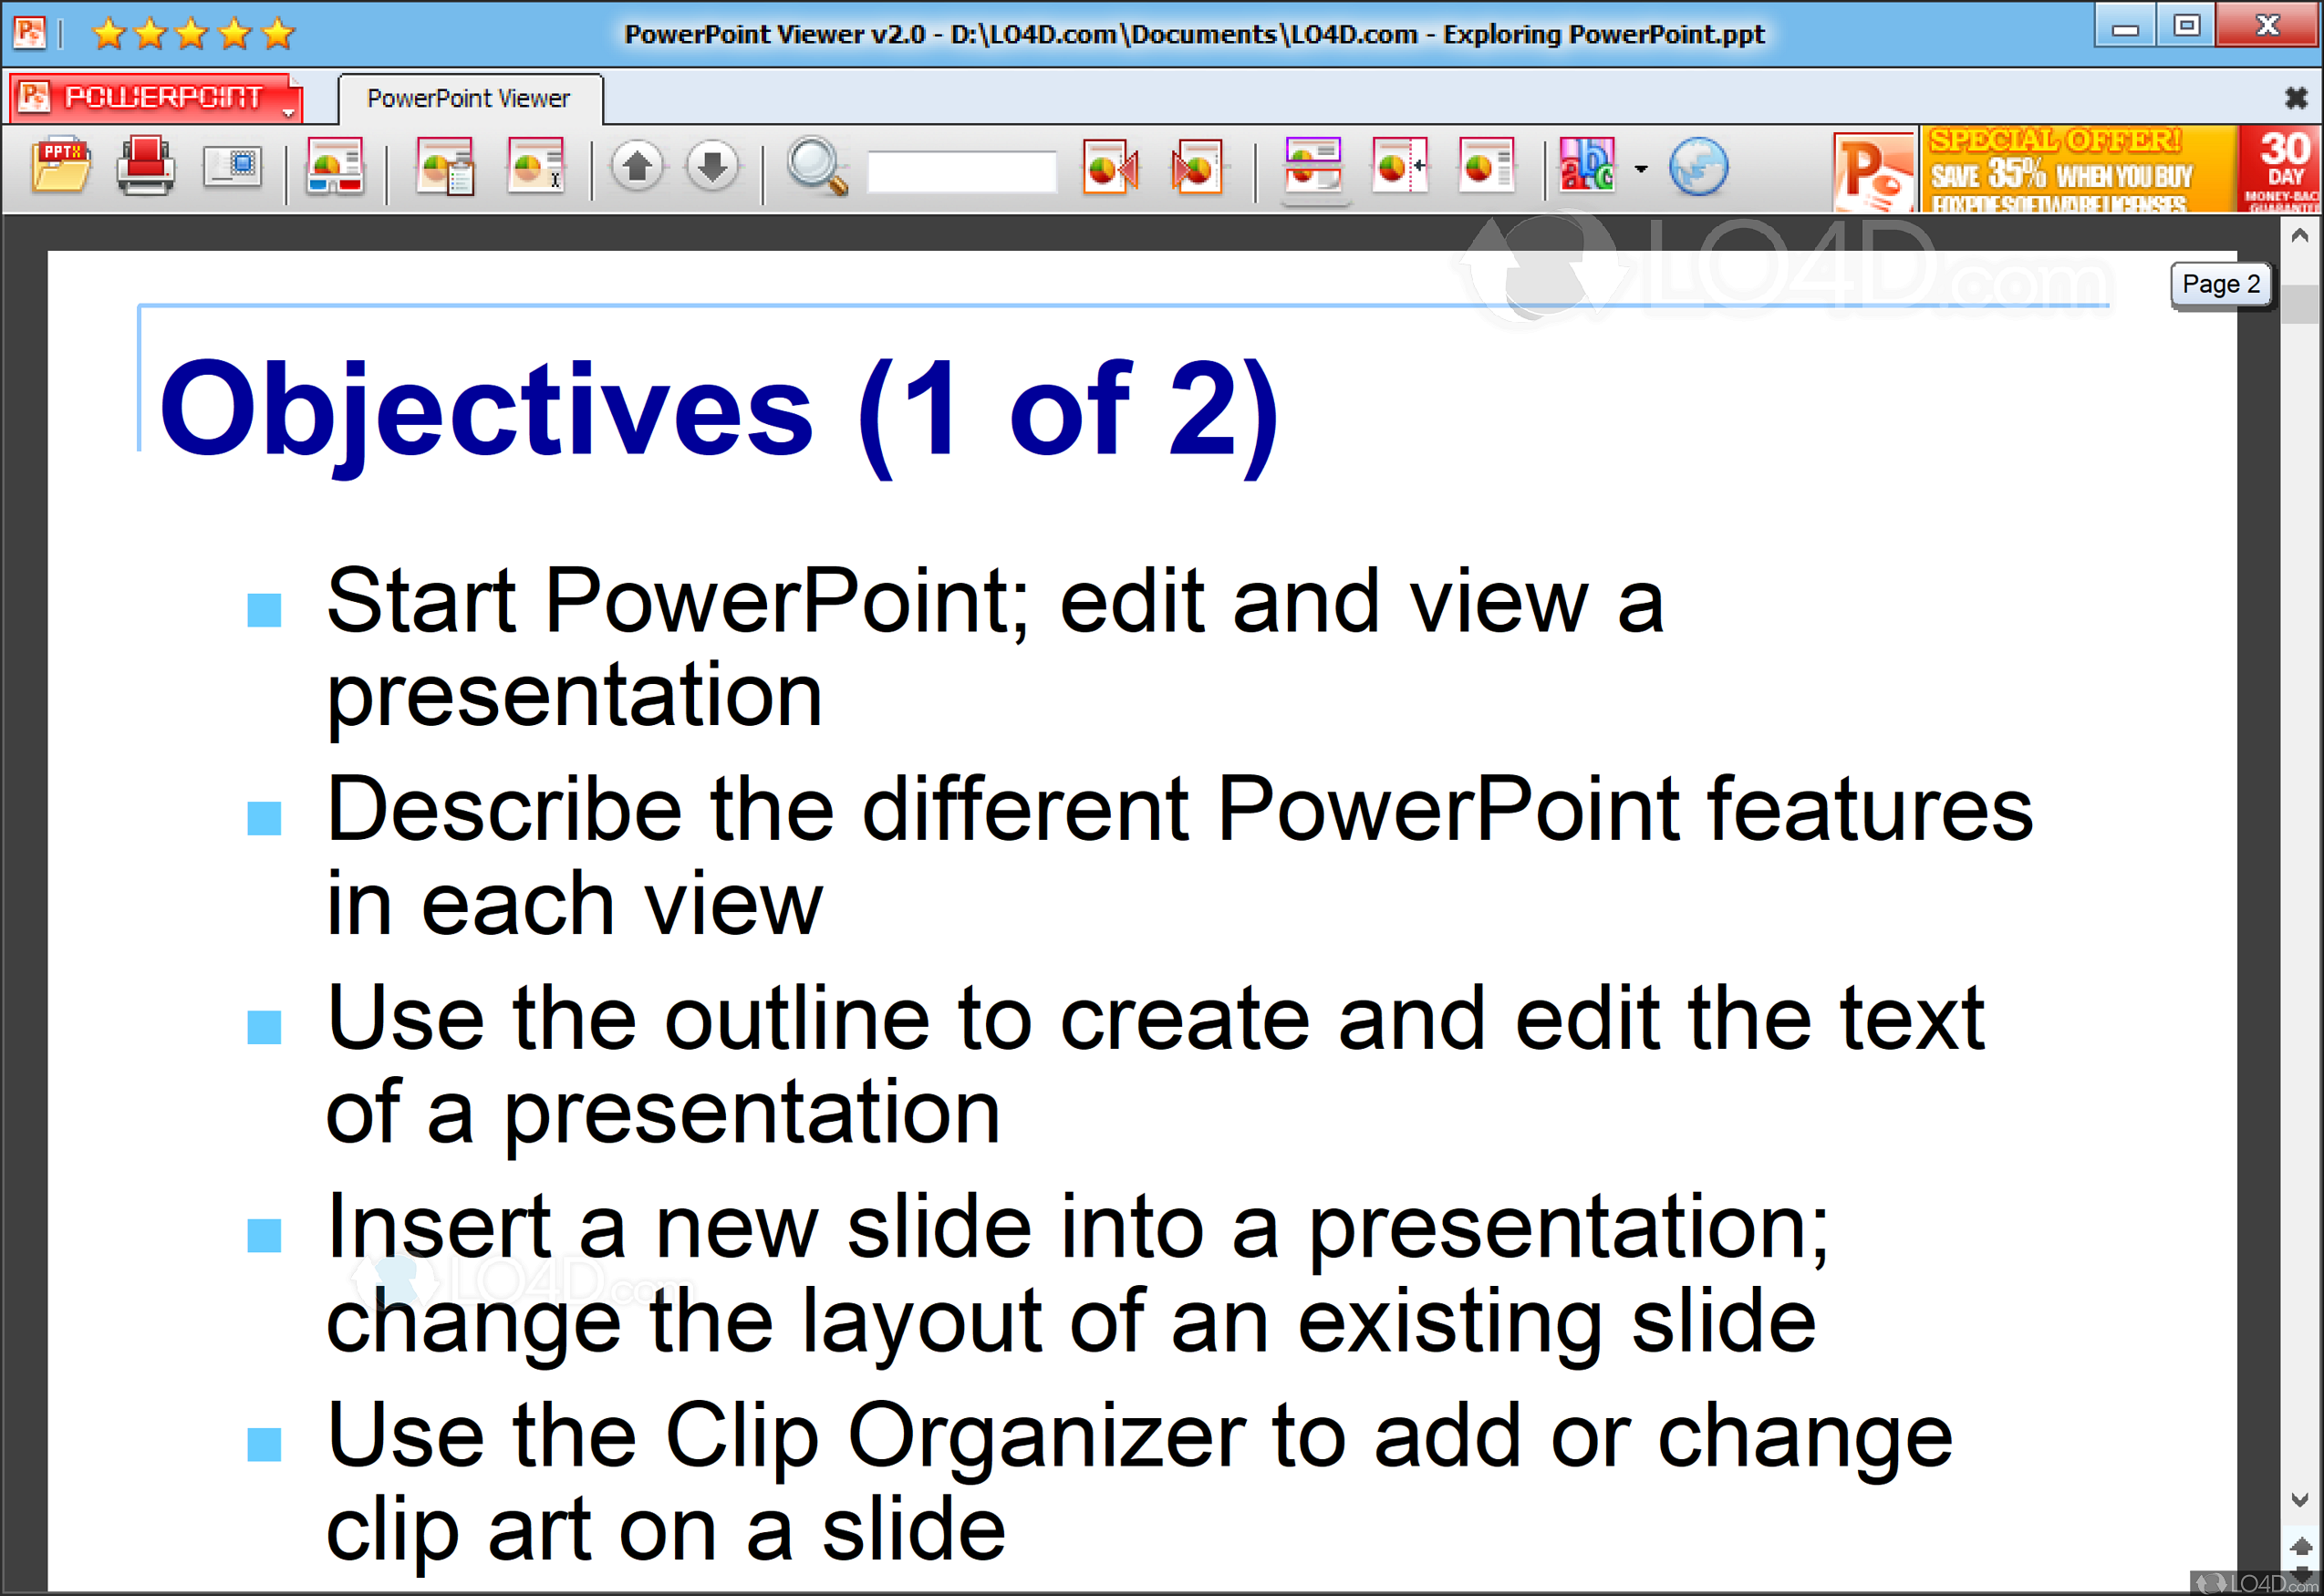 Powerpoint viewer download free for windows 10, 7, 8/8. 1 [64/32 bits].